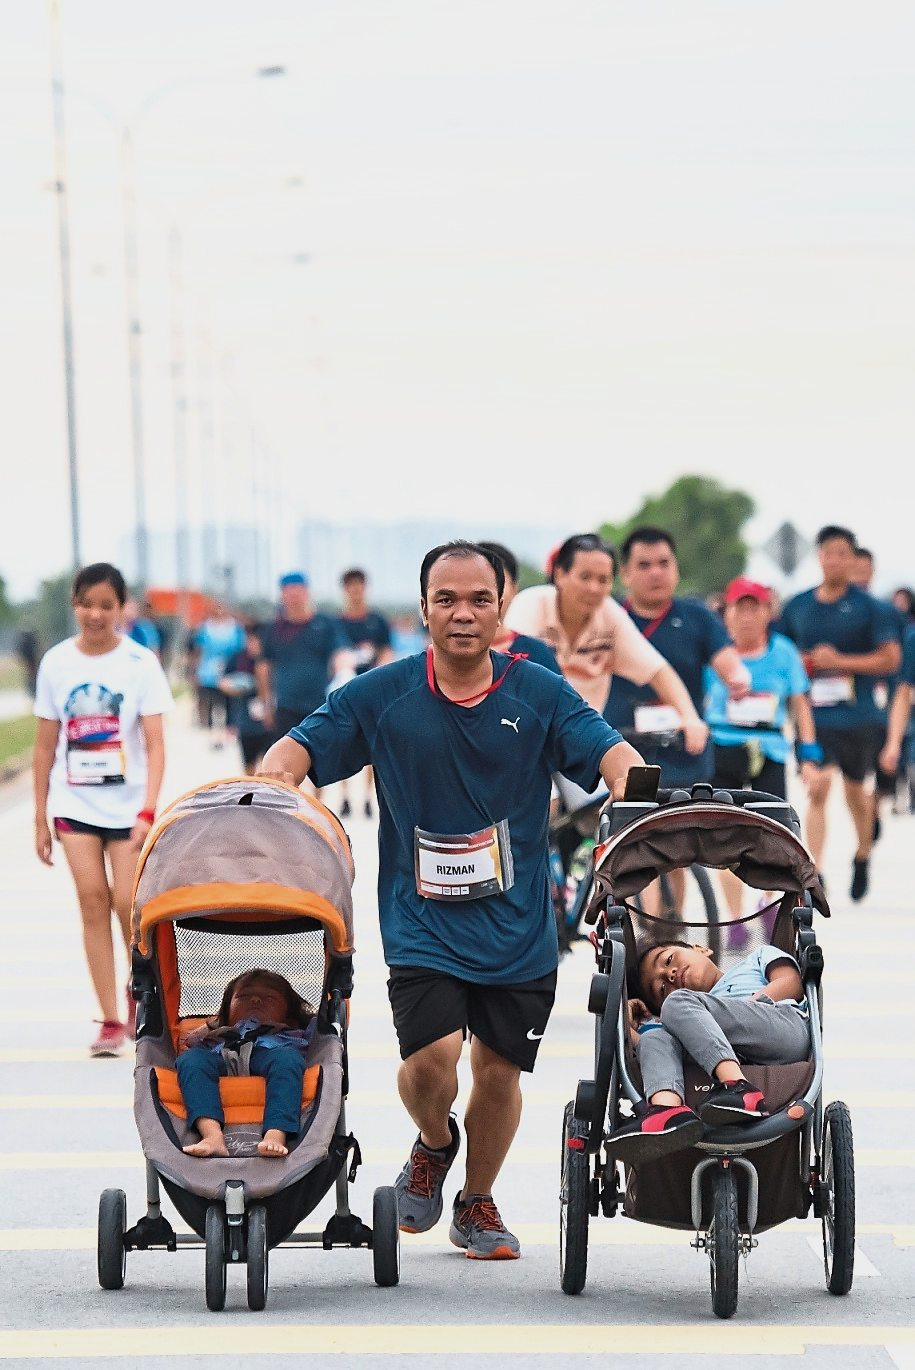 A father of two was not slowed down despite running with strollers.